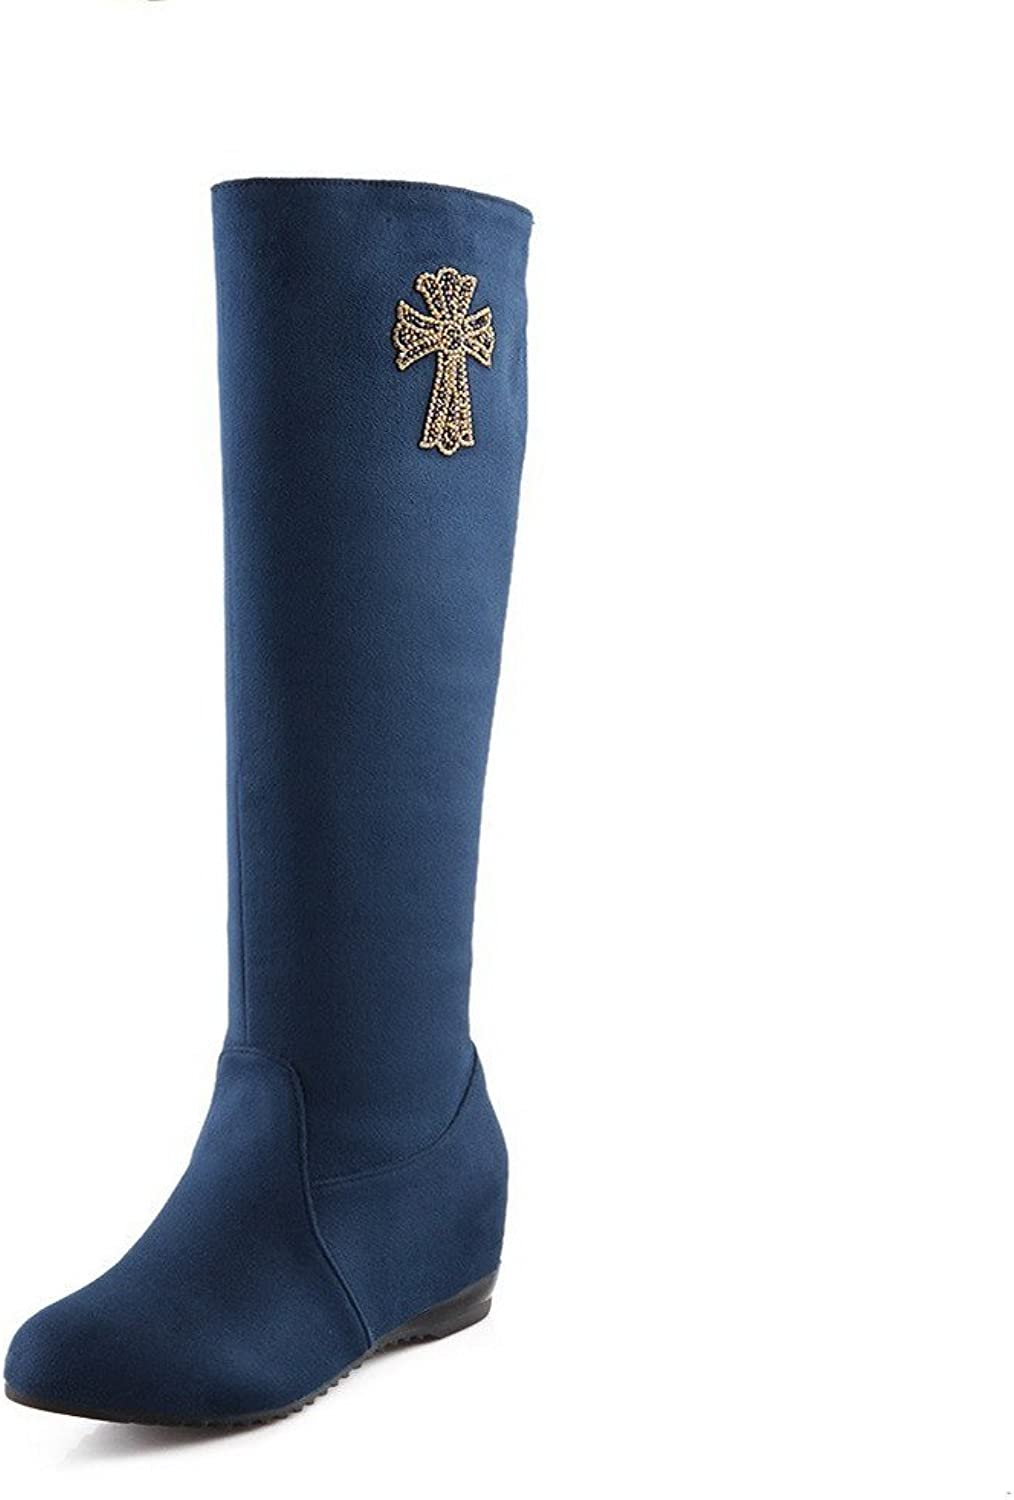 WeiPoot Ladys Closed Round Toe Kitten Heel PU Frosted Solid Boots with Glass Diamond, Royalbluee, 7.5 B(M) US